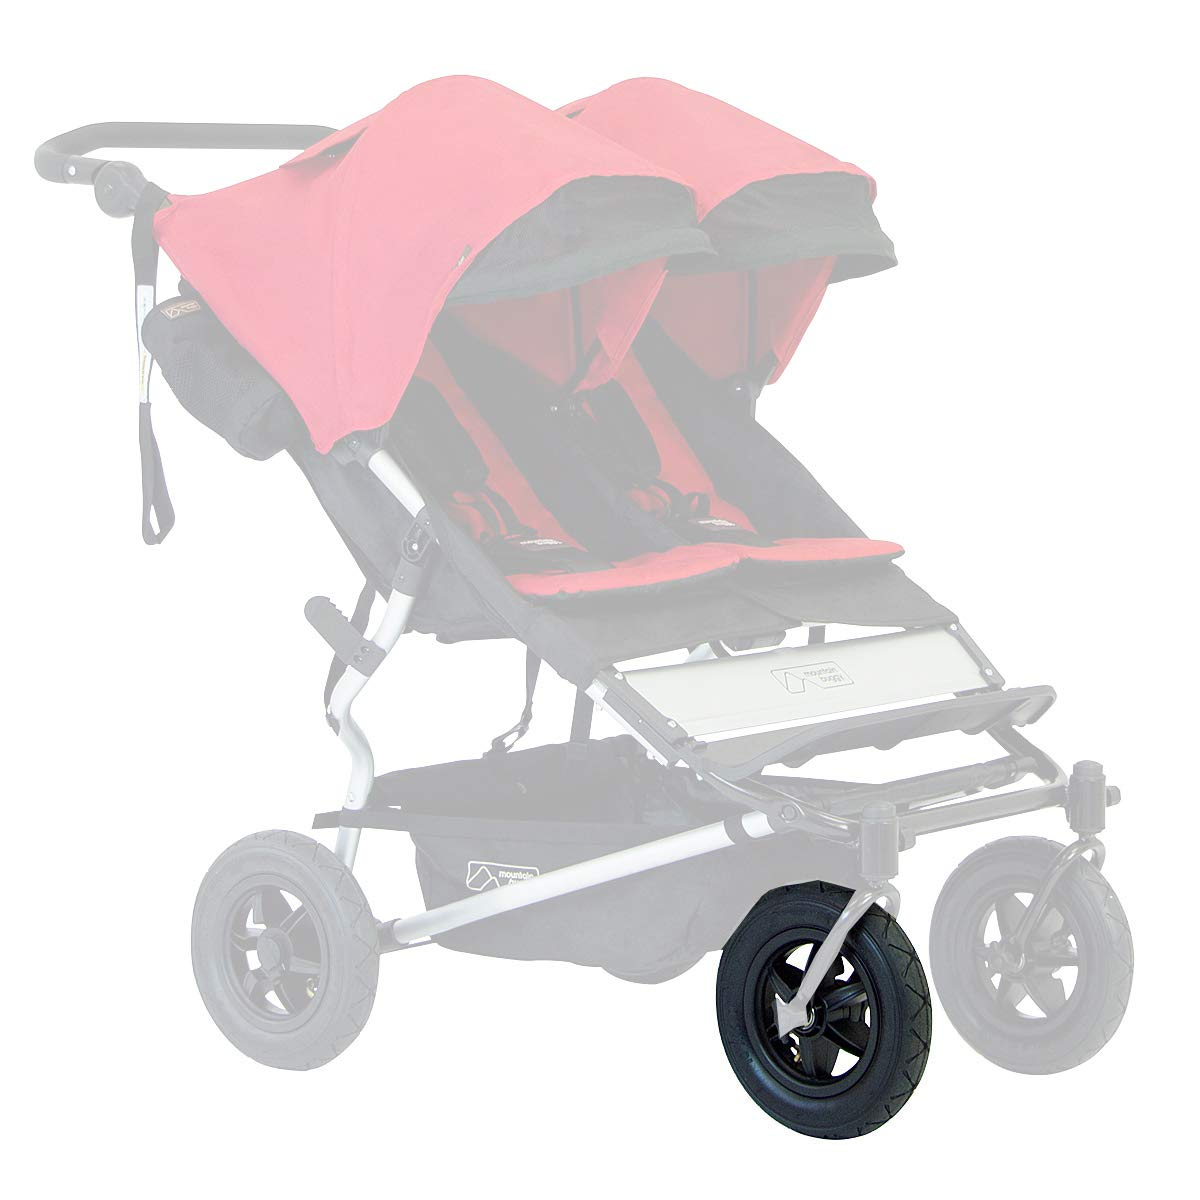 "Mountain Buggy 10"" Complete Front Wheel, Tire, + Tube for 2015 - 2017 V2.5 Duet Strollers"